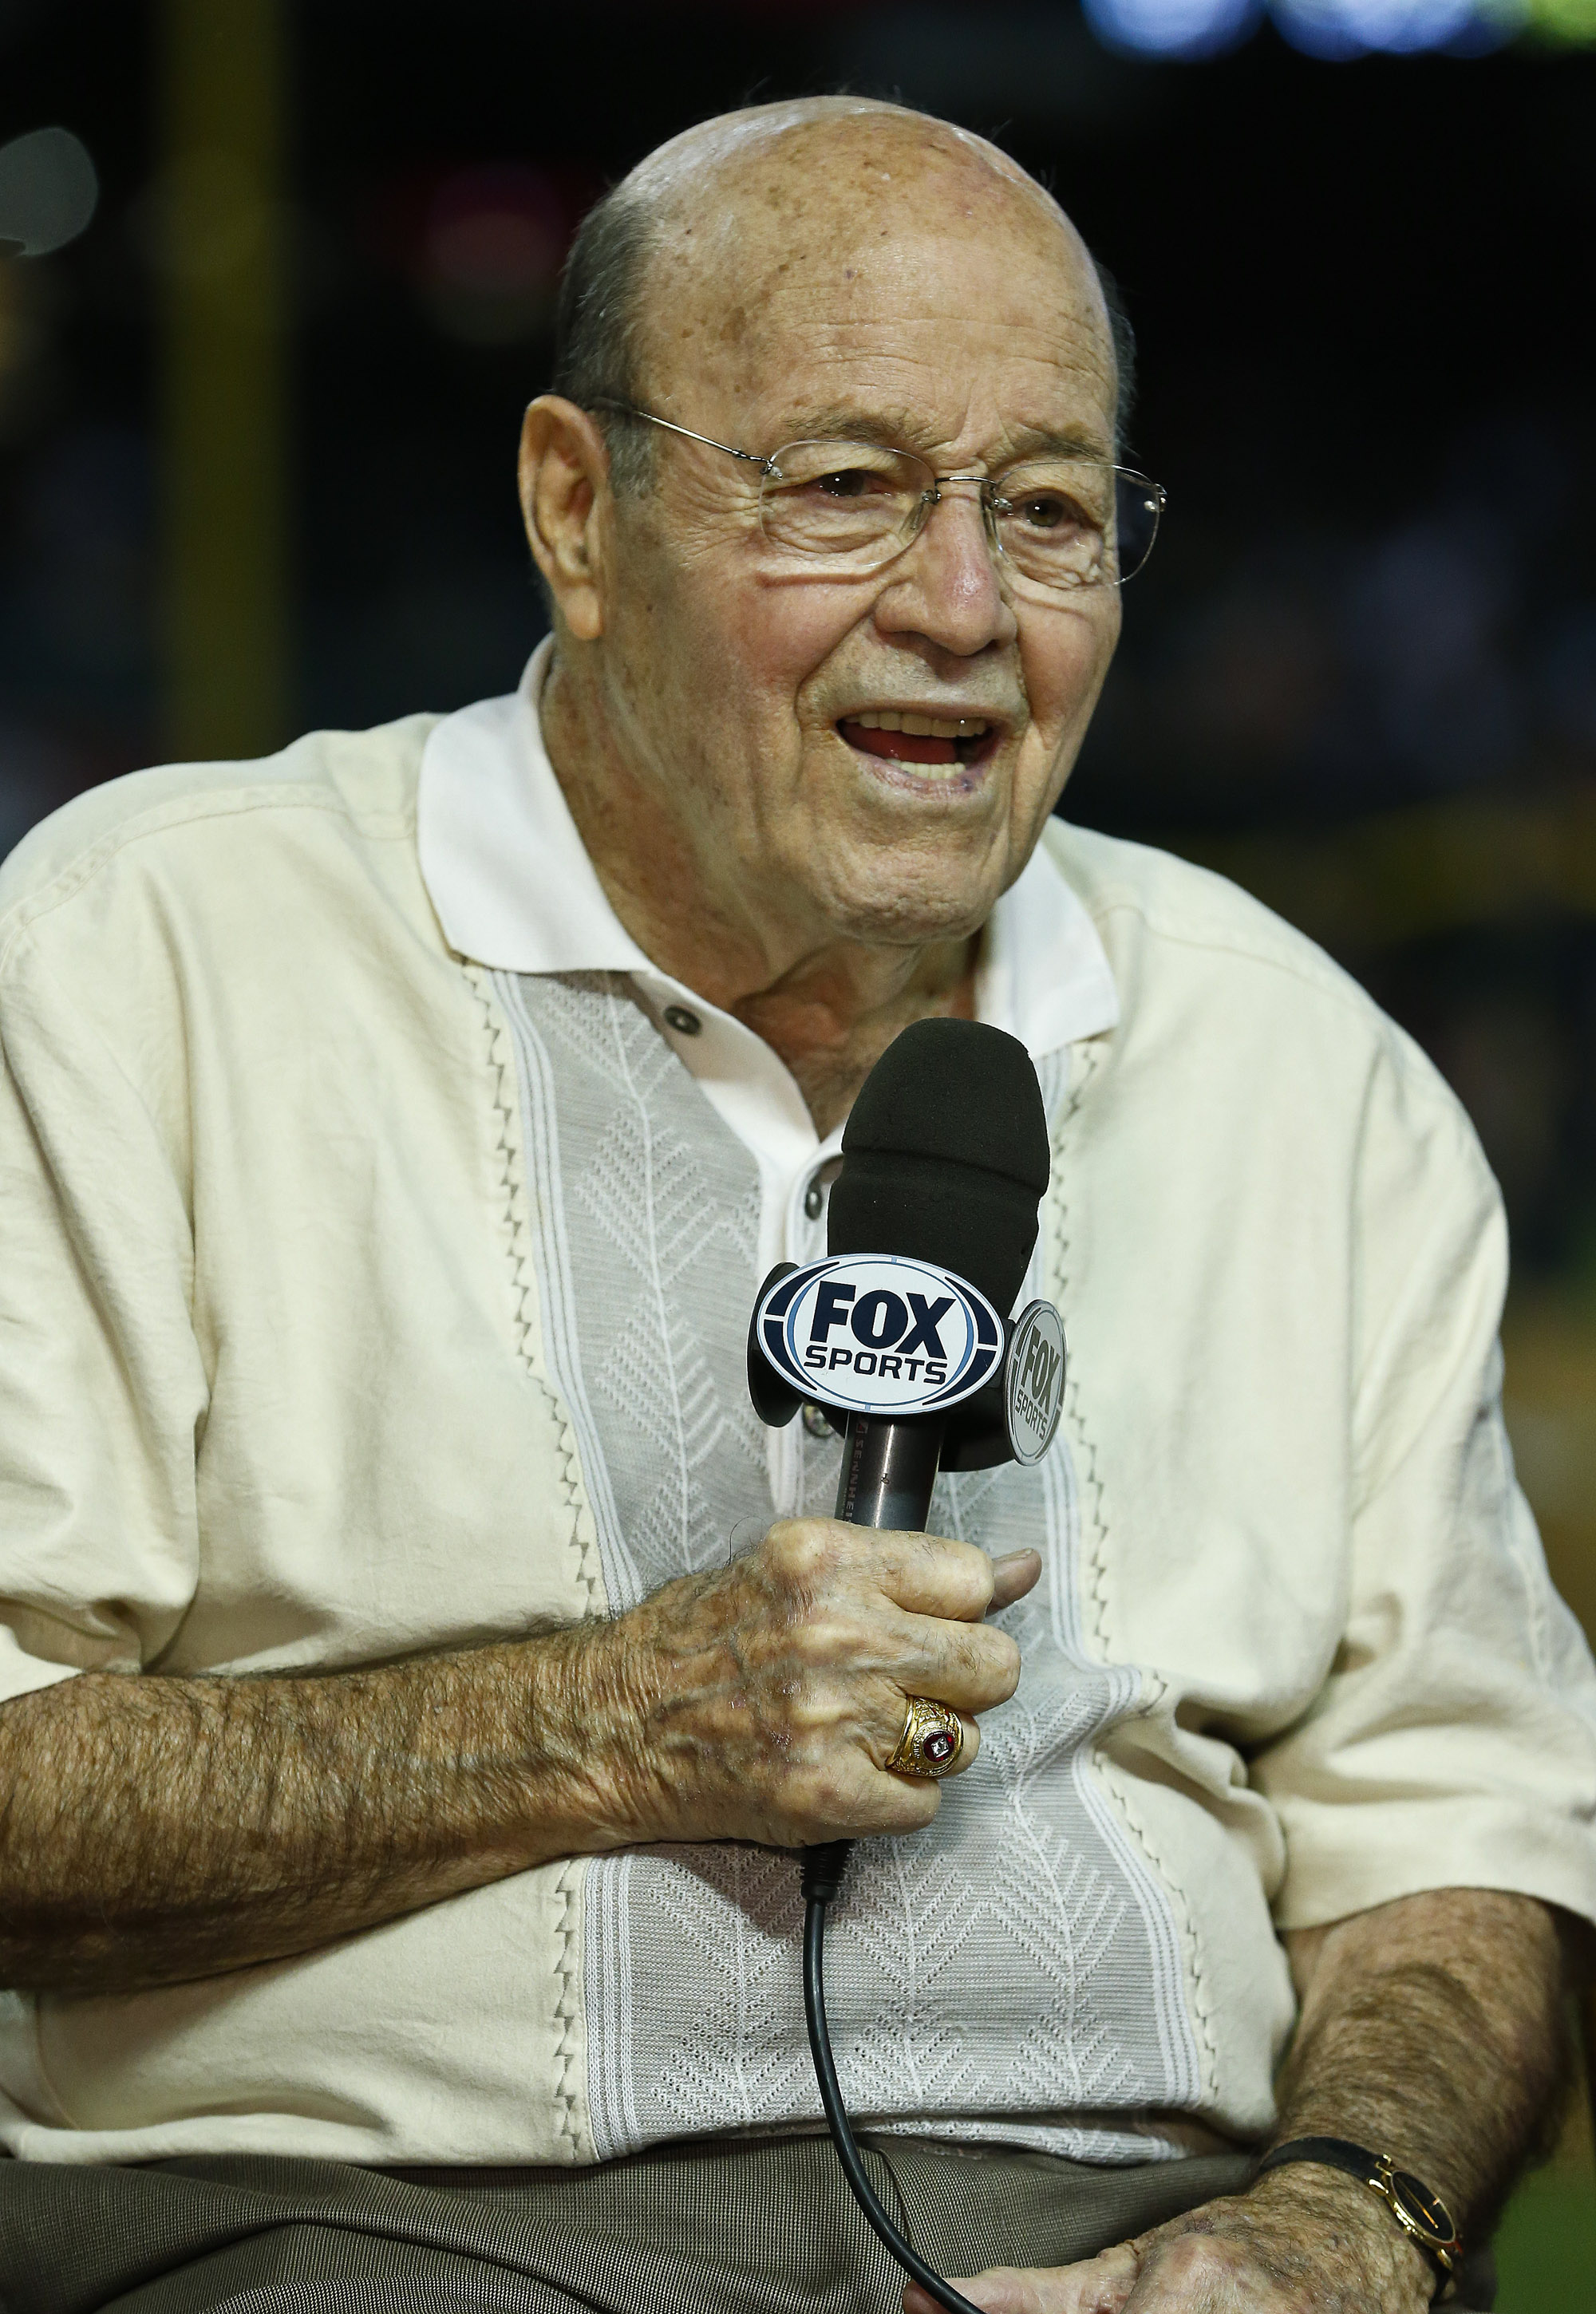 Arizona Diamondbacks broadcaster Joe Garagiola speaks during a pregame show prior to a baseball game against the Los Angeles Dodgers, on Sunday, April 14, 2013 in Phoenix.  The game was Garagiola's last as a broadcaster as he announced his retirement. (AP